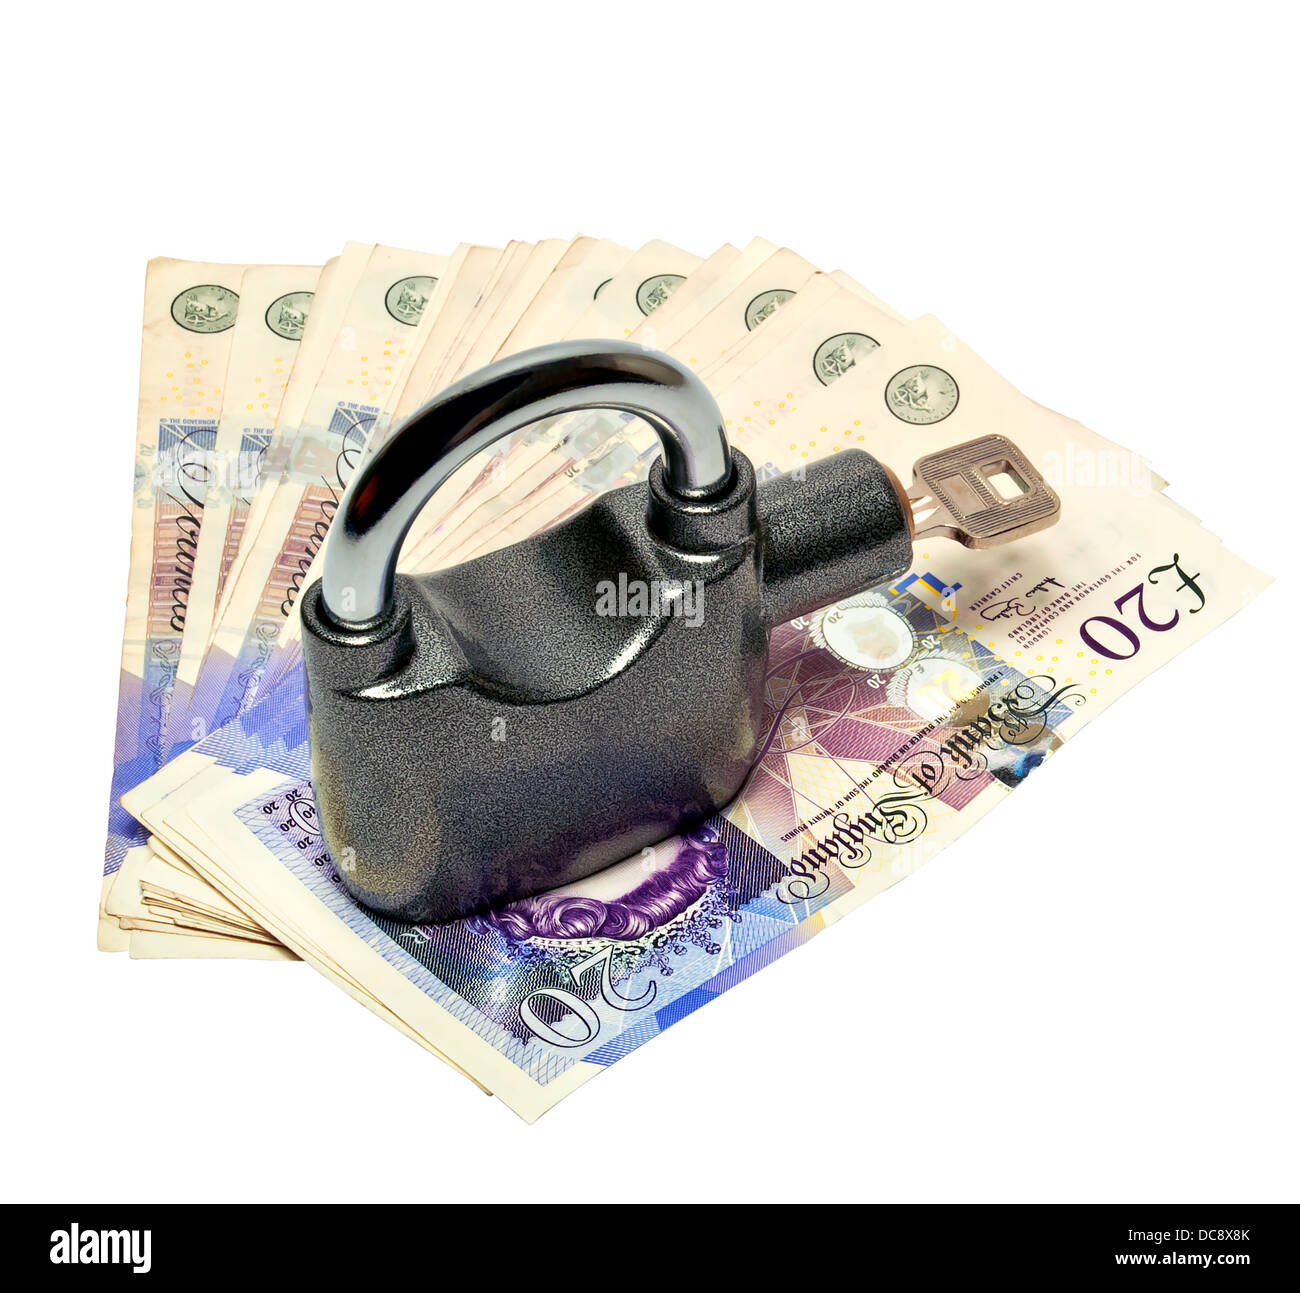 Money and padlock safety concept clipping path included - Stock Image